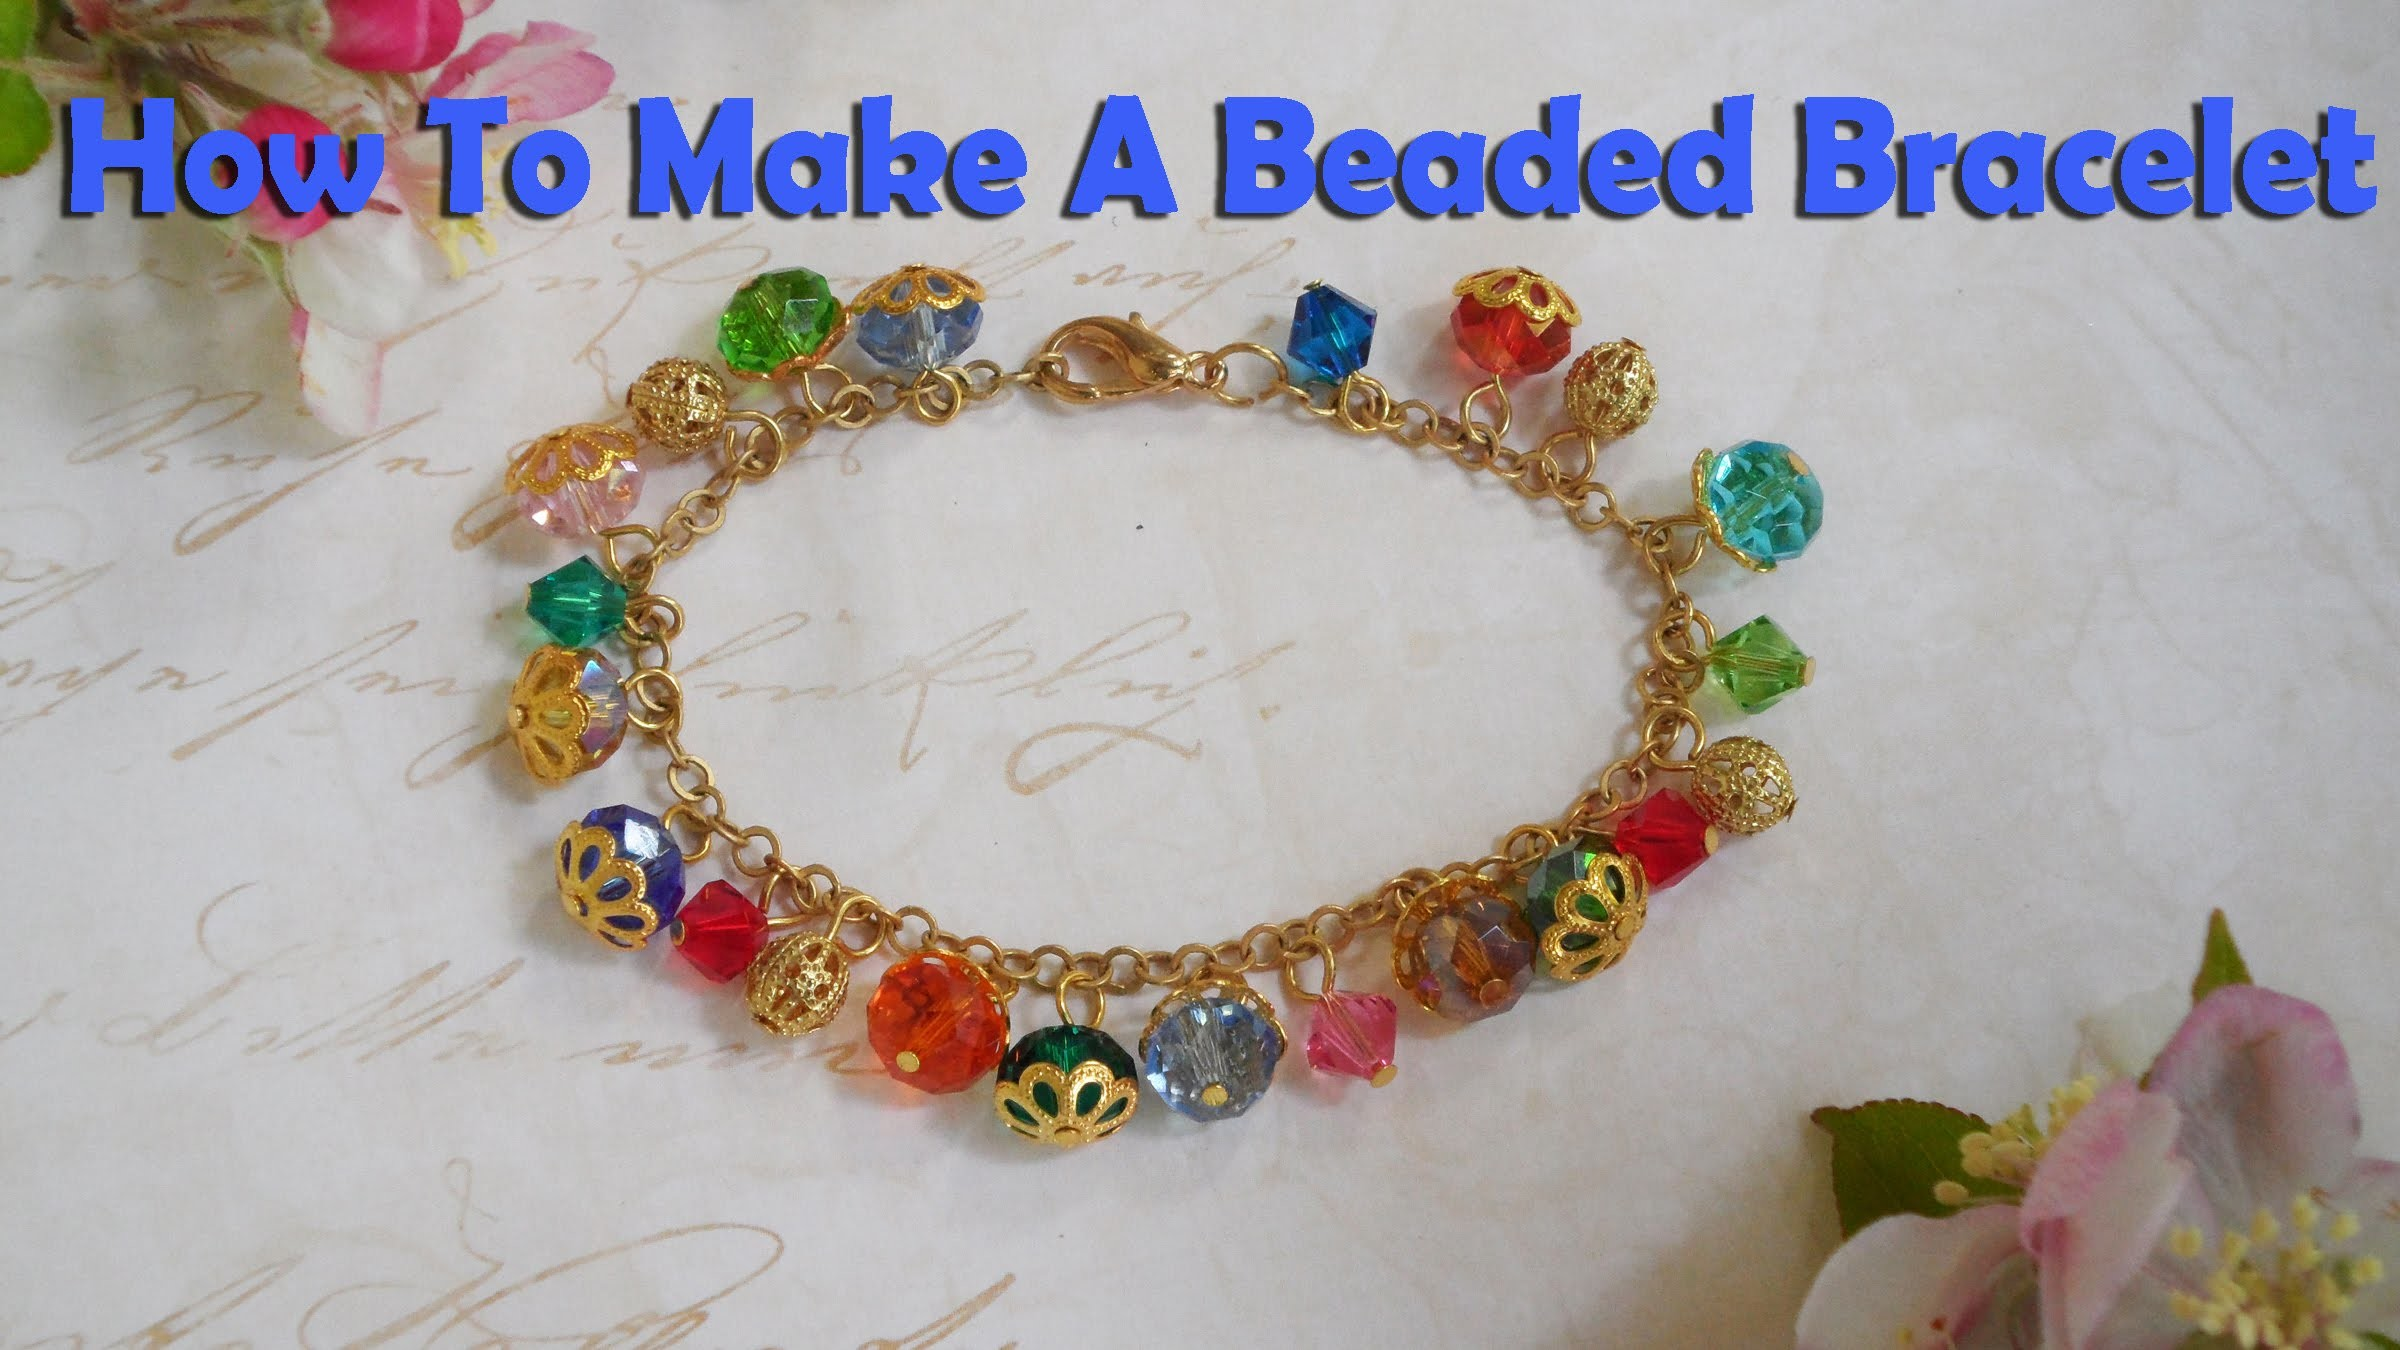 How To Make Jewelry: How To Make A Beaded Dangle Bracelet